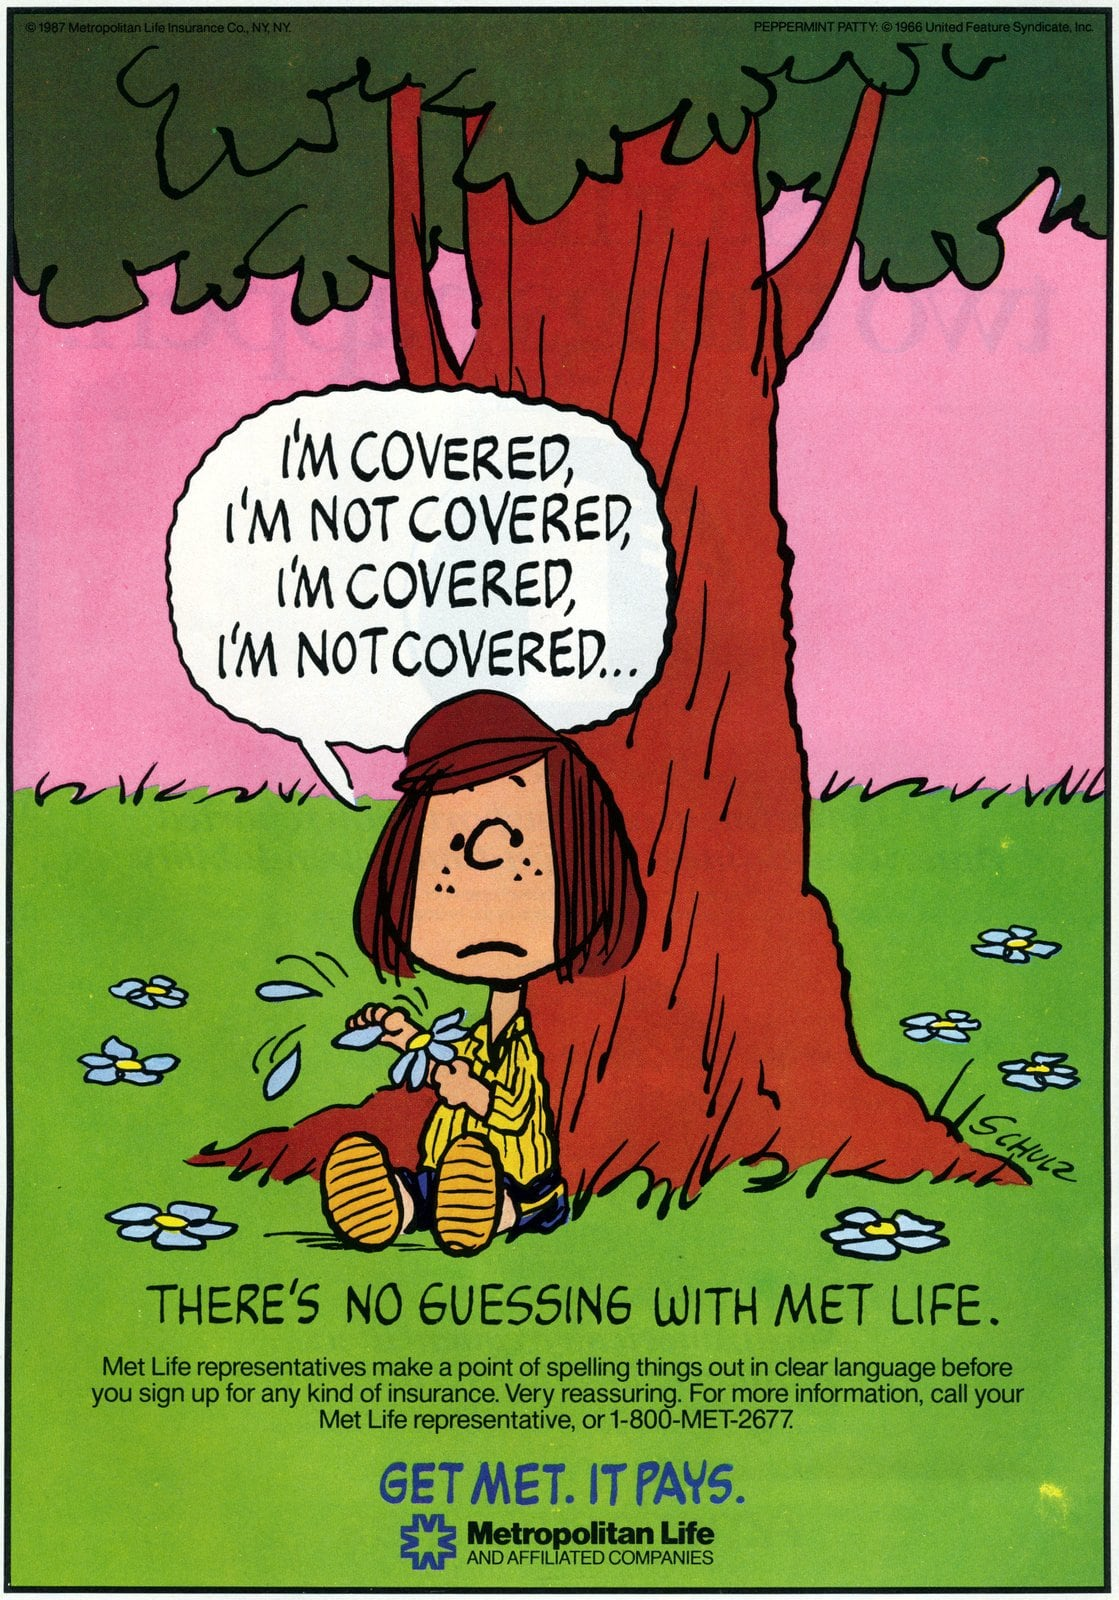 Peppermint Patty - Peanuts for Met Life (1987)